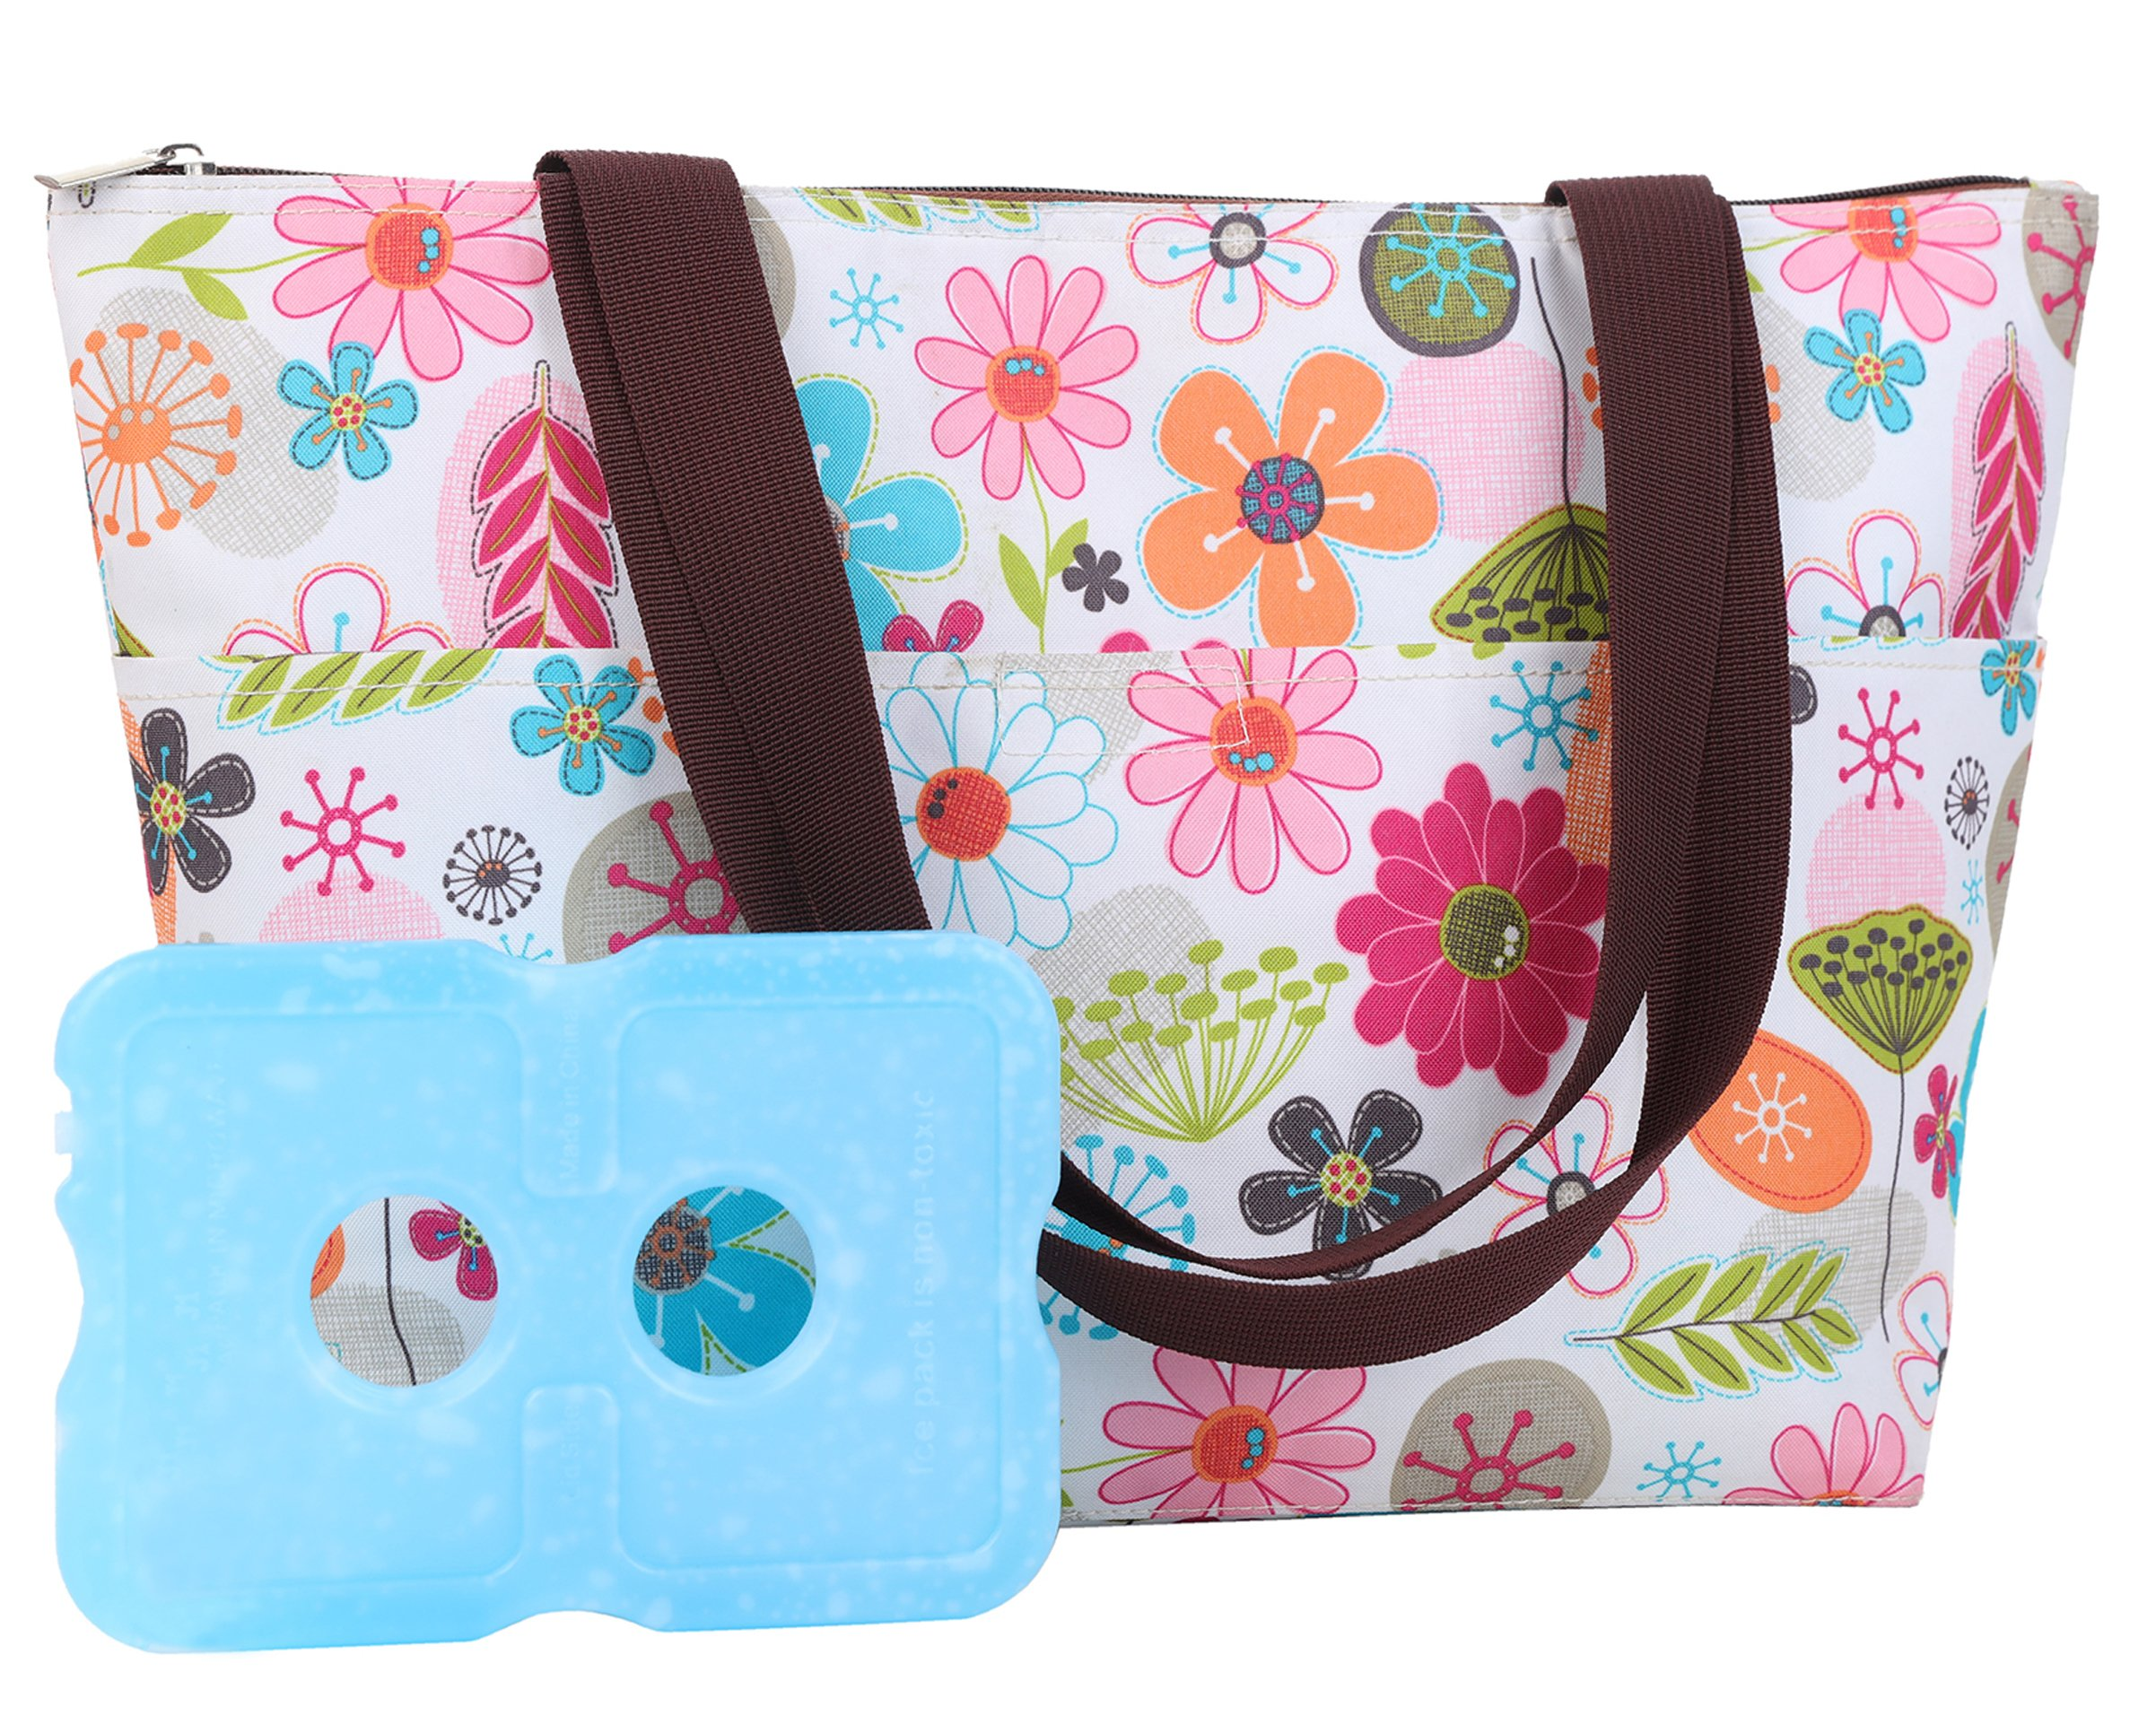 Lunch Bag With Ice Pack Lunch Bag Tote Bag, Recyclable,Picnic Lunch Bag For Women 1 Lunch Bags & 1 Ice Pack VSH331